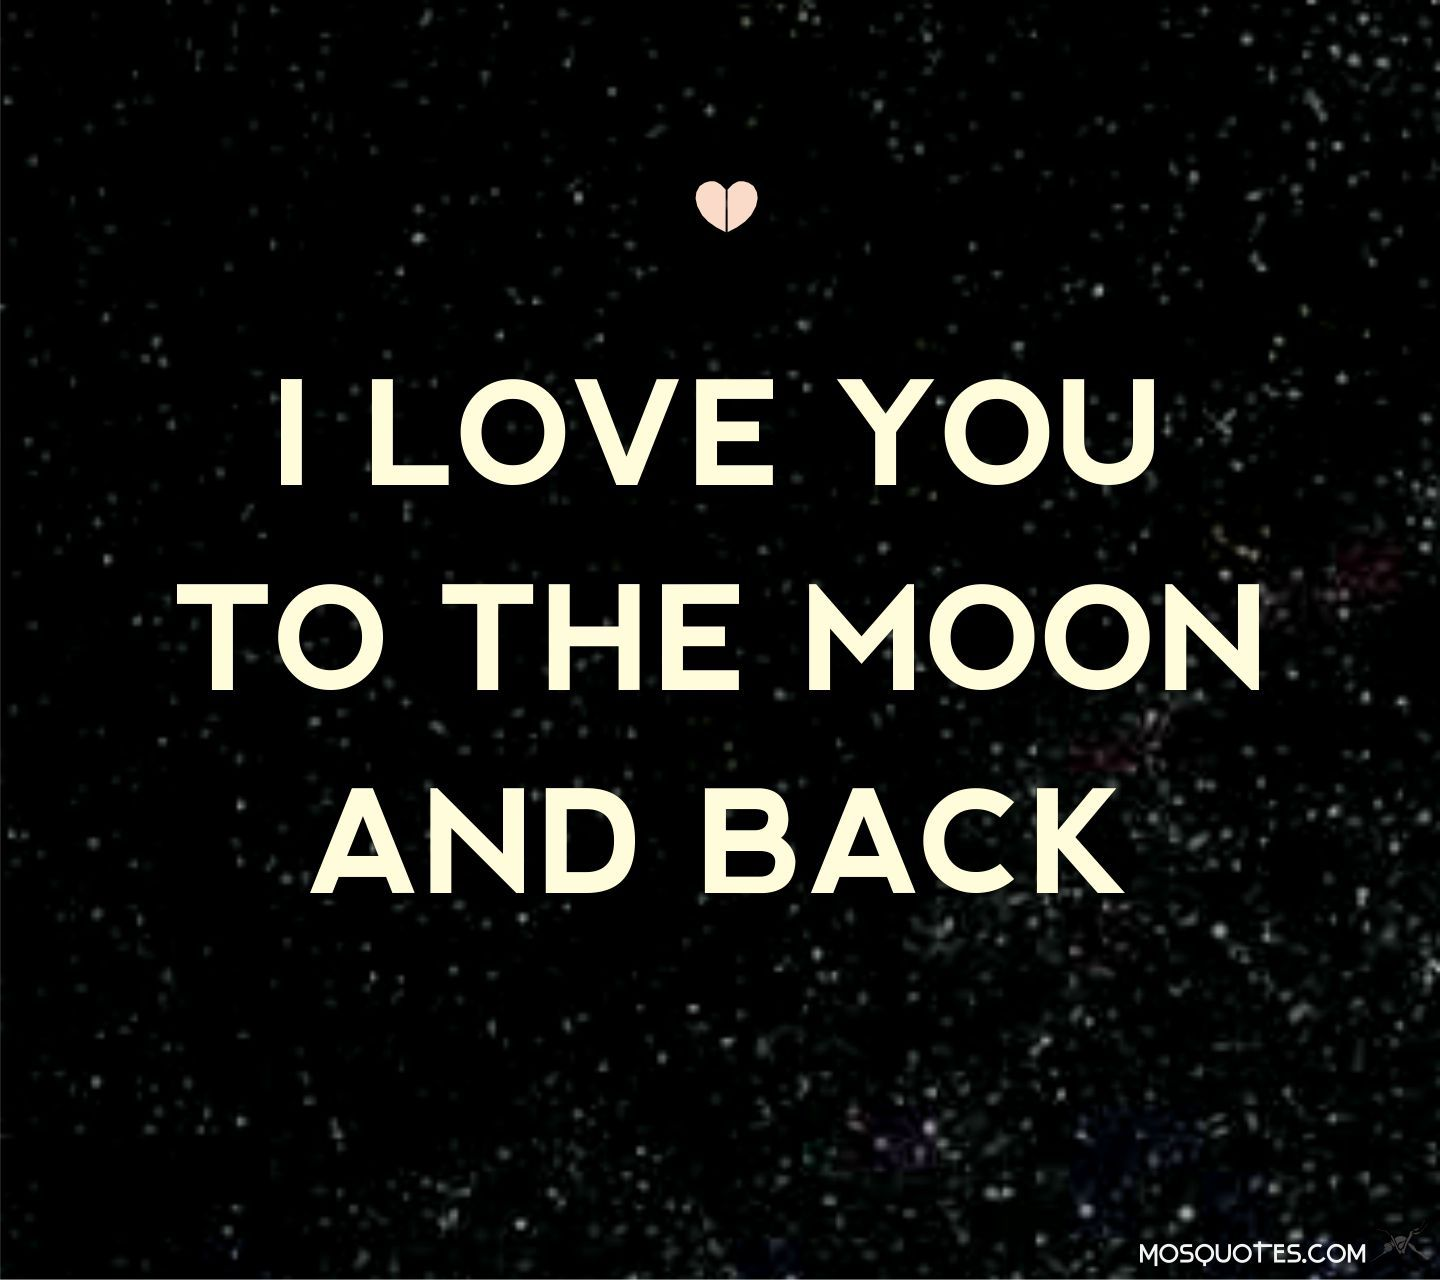 Quote I Love You To The Moon And Back Love Quotes For Him I Love You To The Moon And Back  Love Quotes